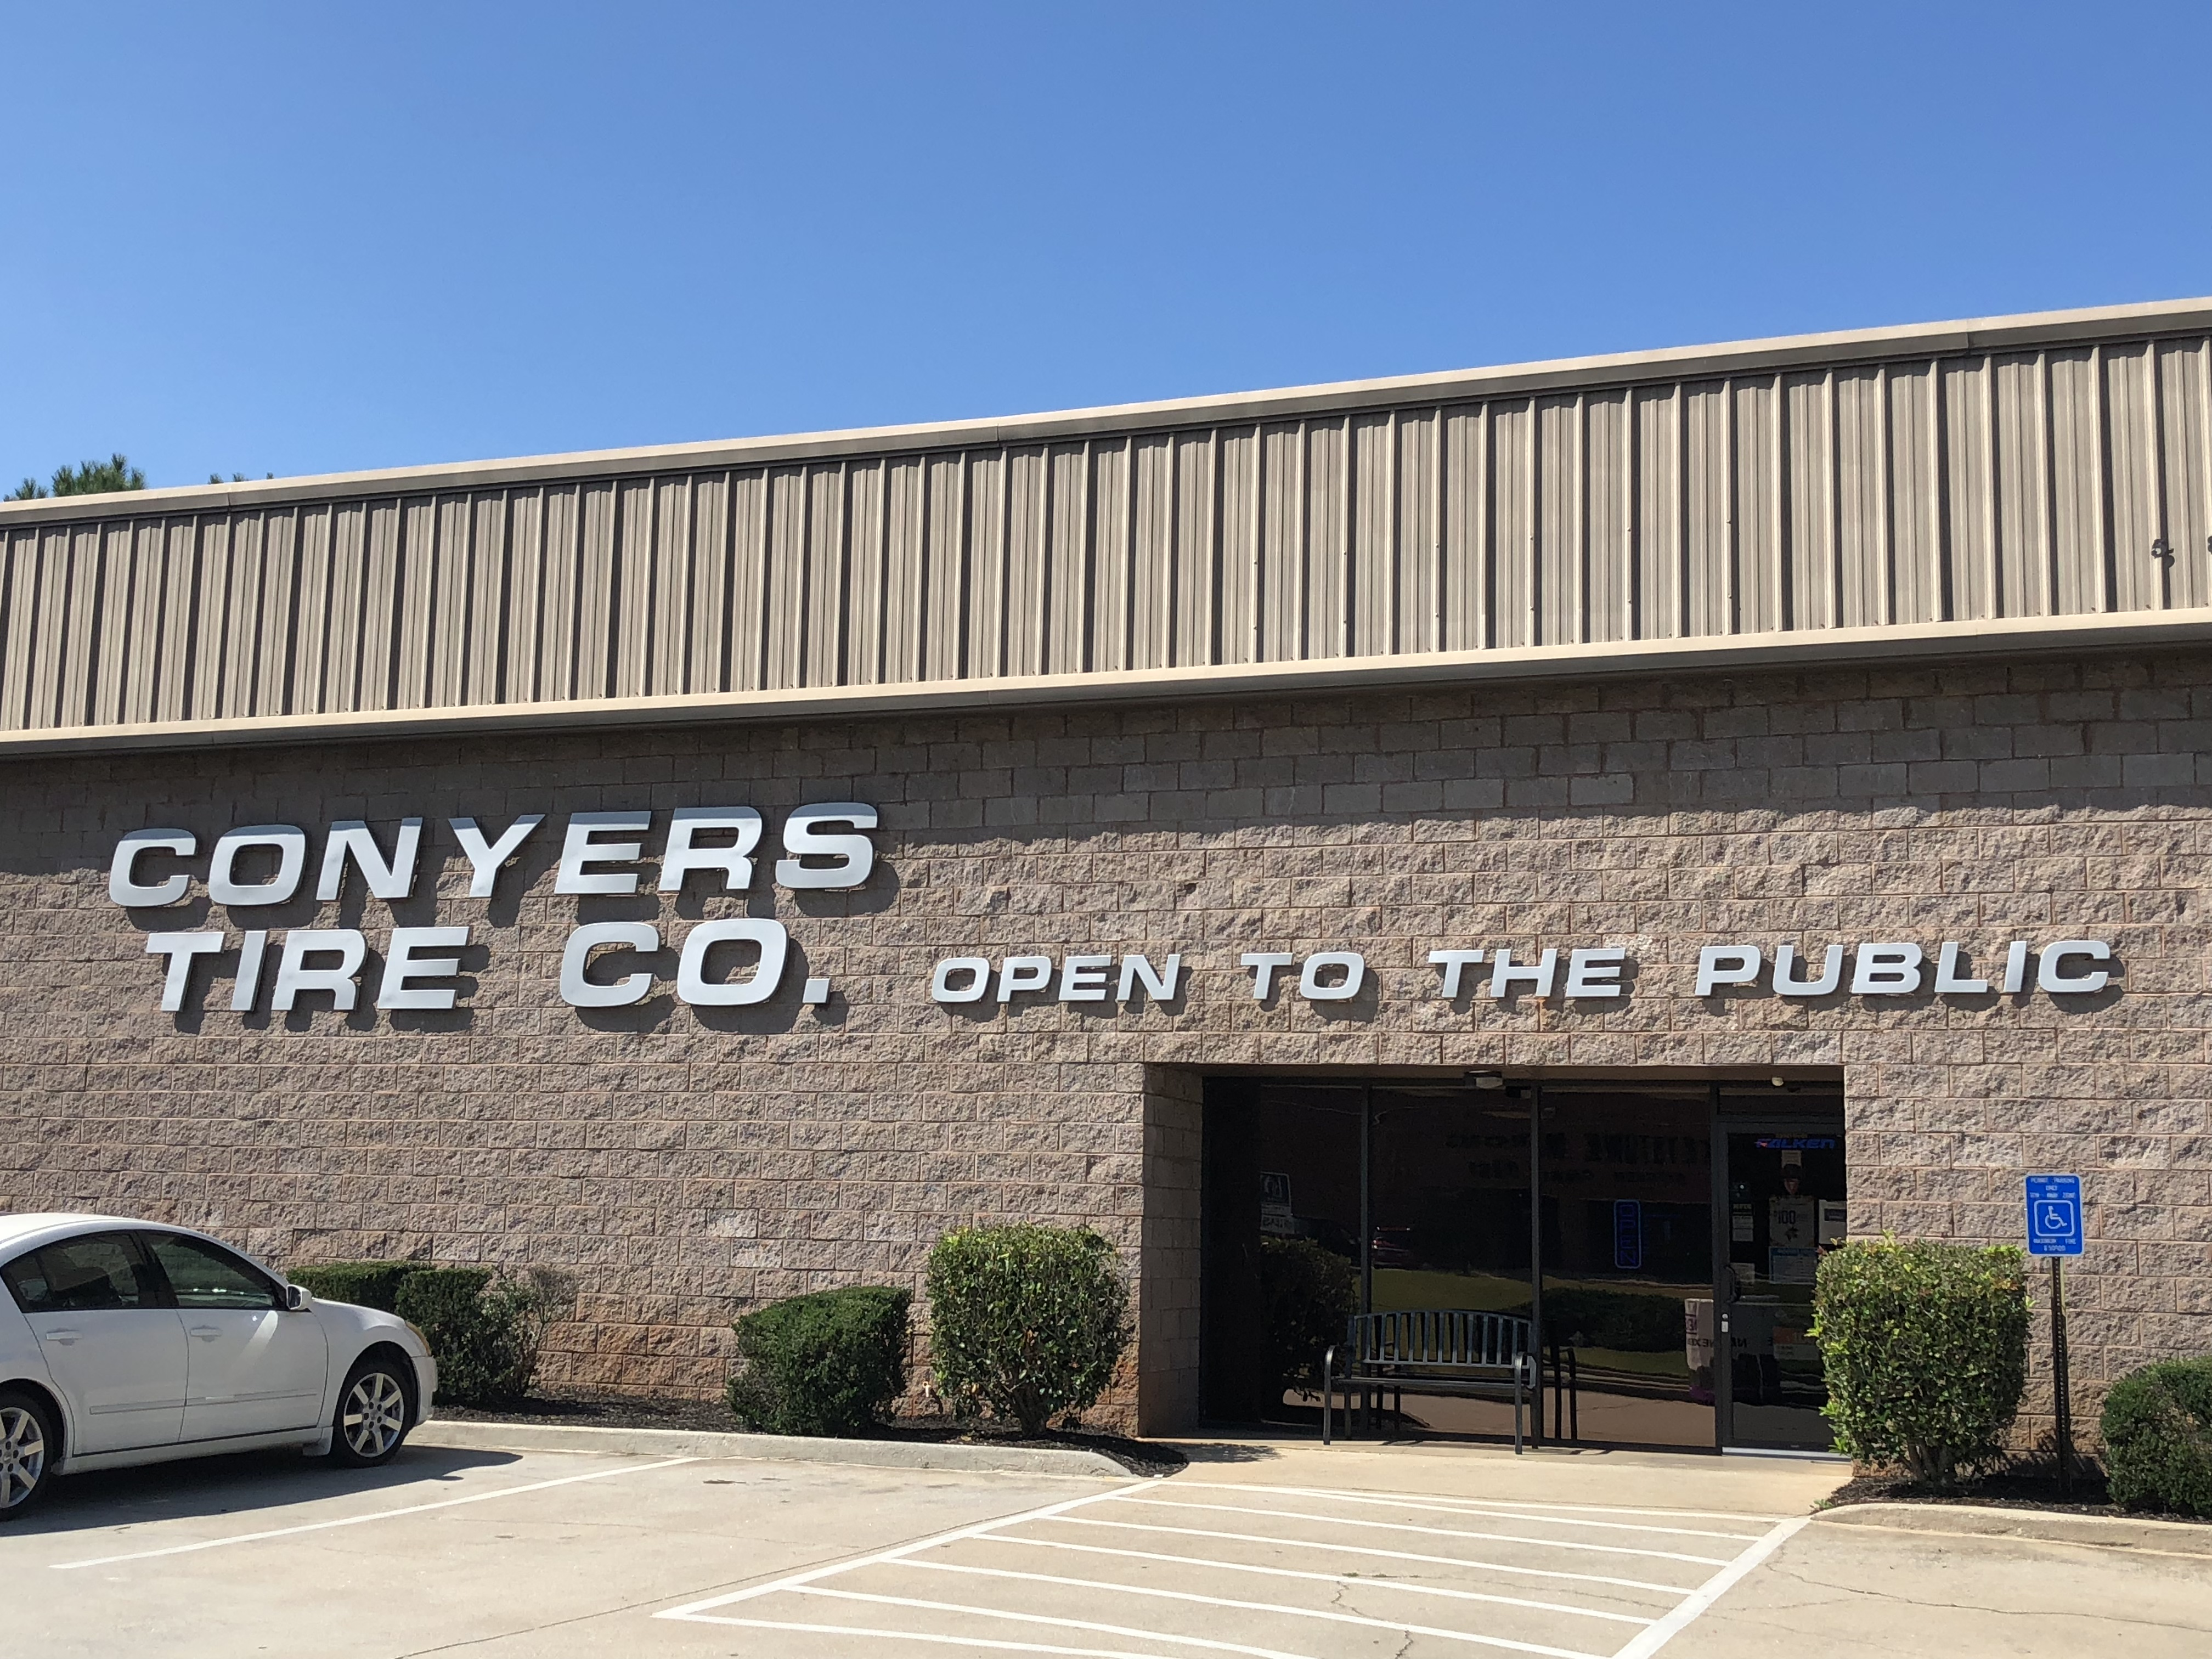 CONYERS TIRE